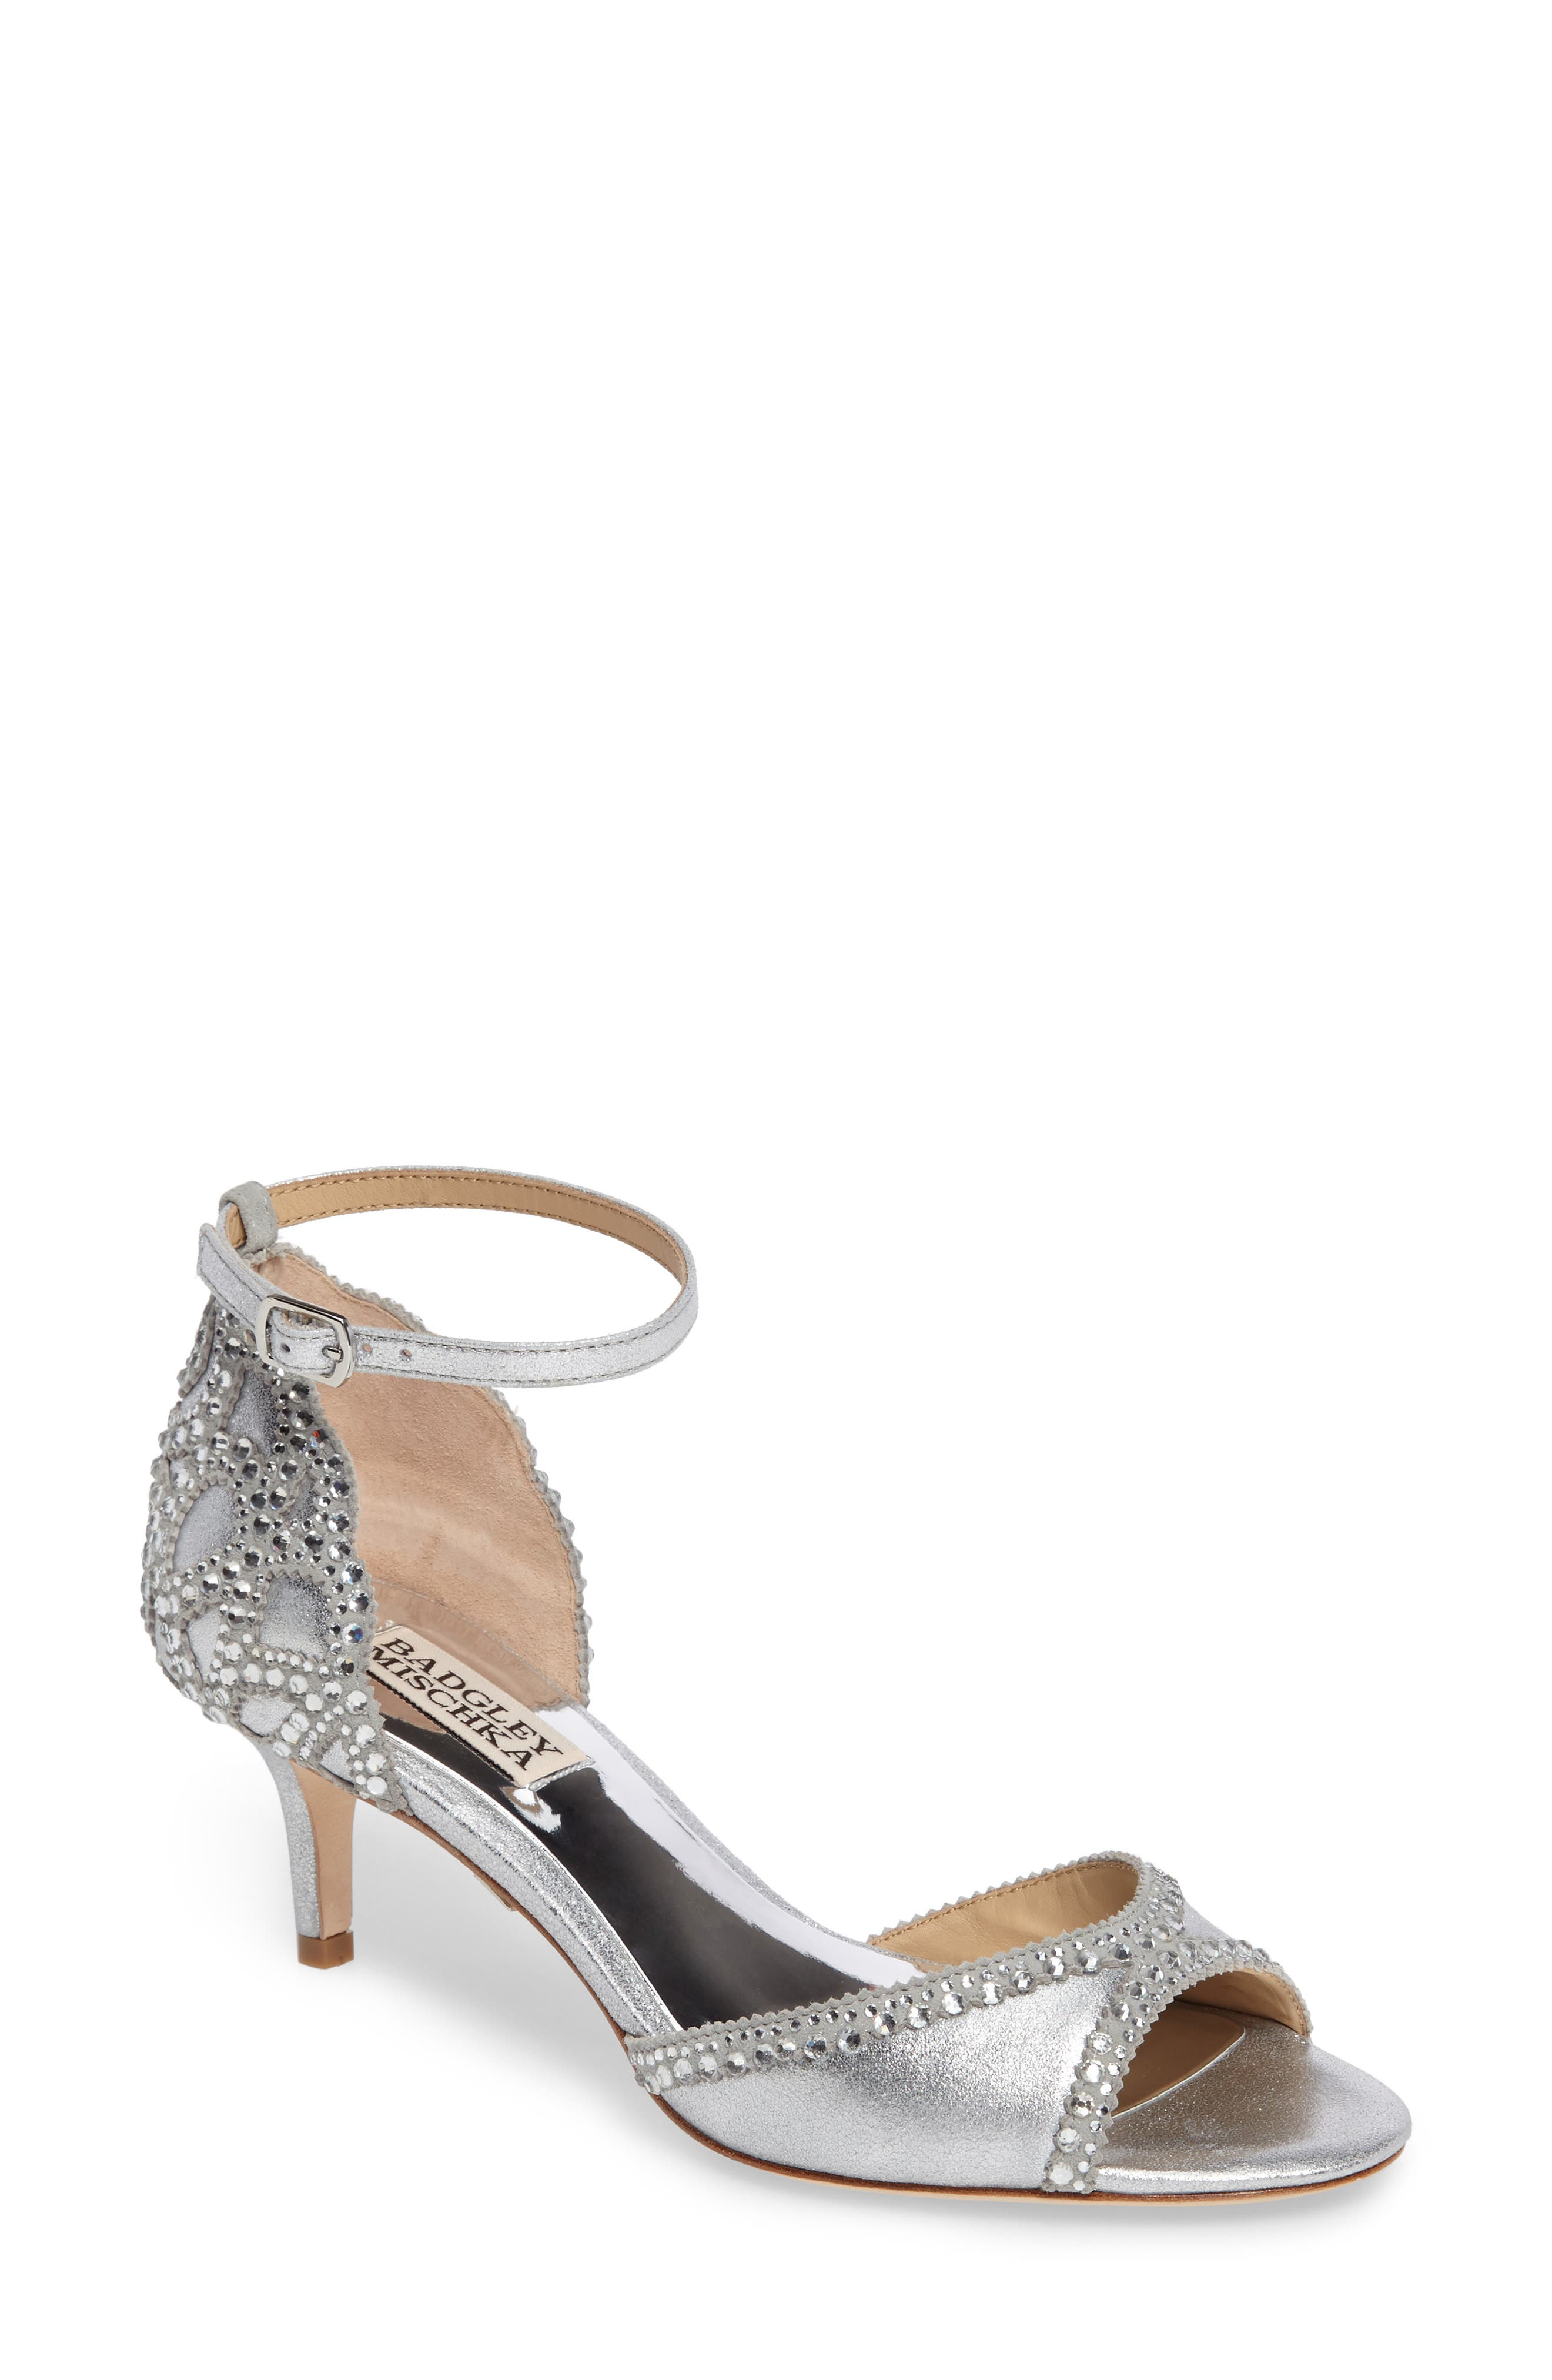 'Gillian' Crystal Embellished d'Orsay Sandal,                             Main thumbnail 1, color,                             SILVER METALLIC SUEDE